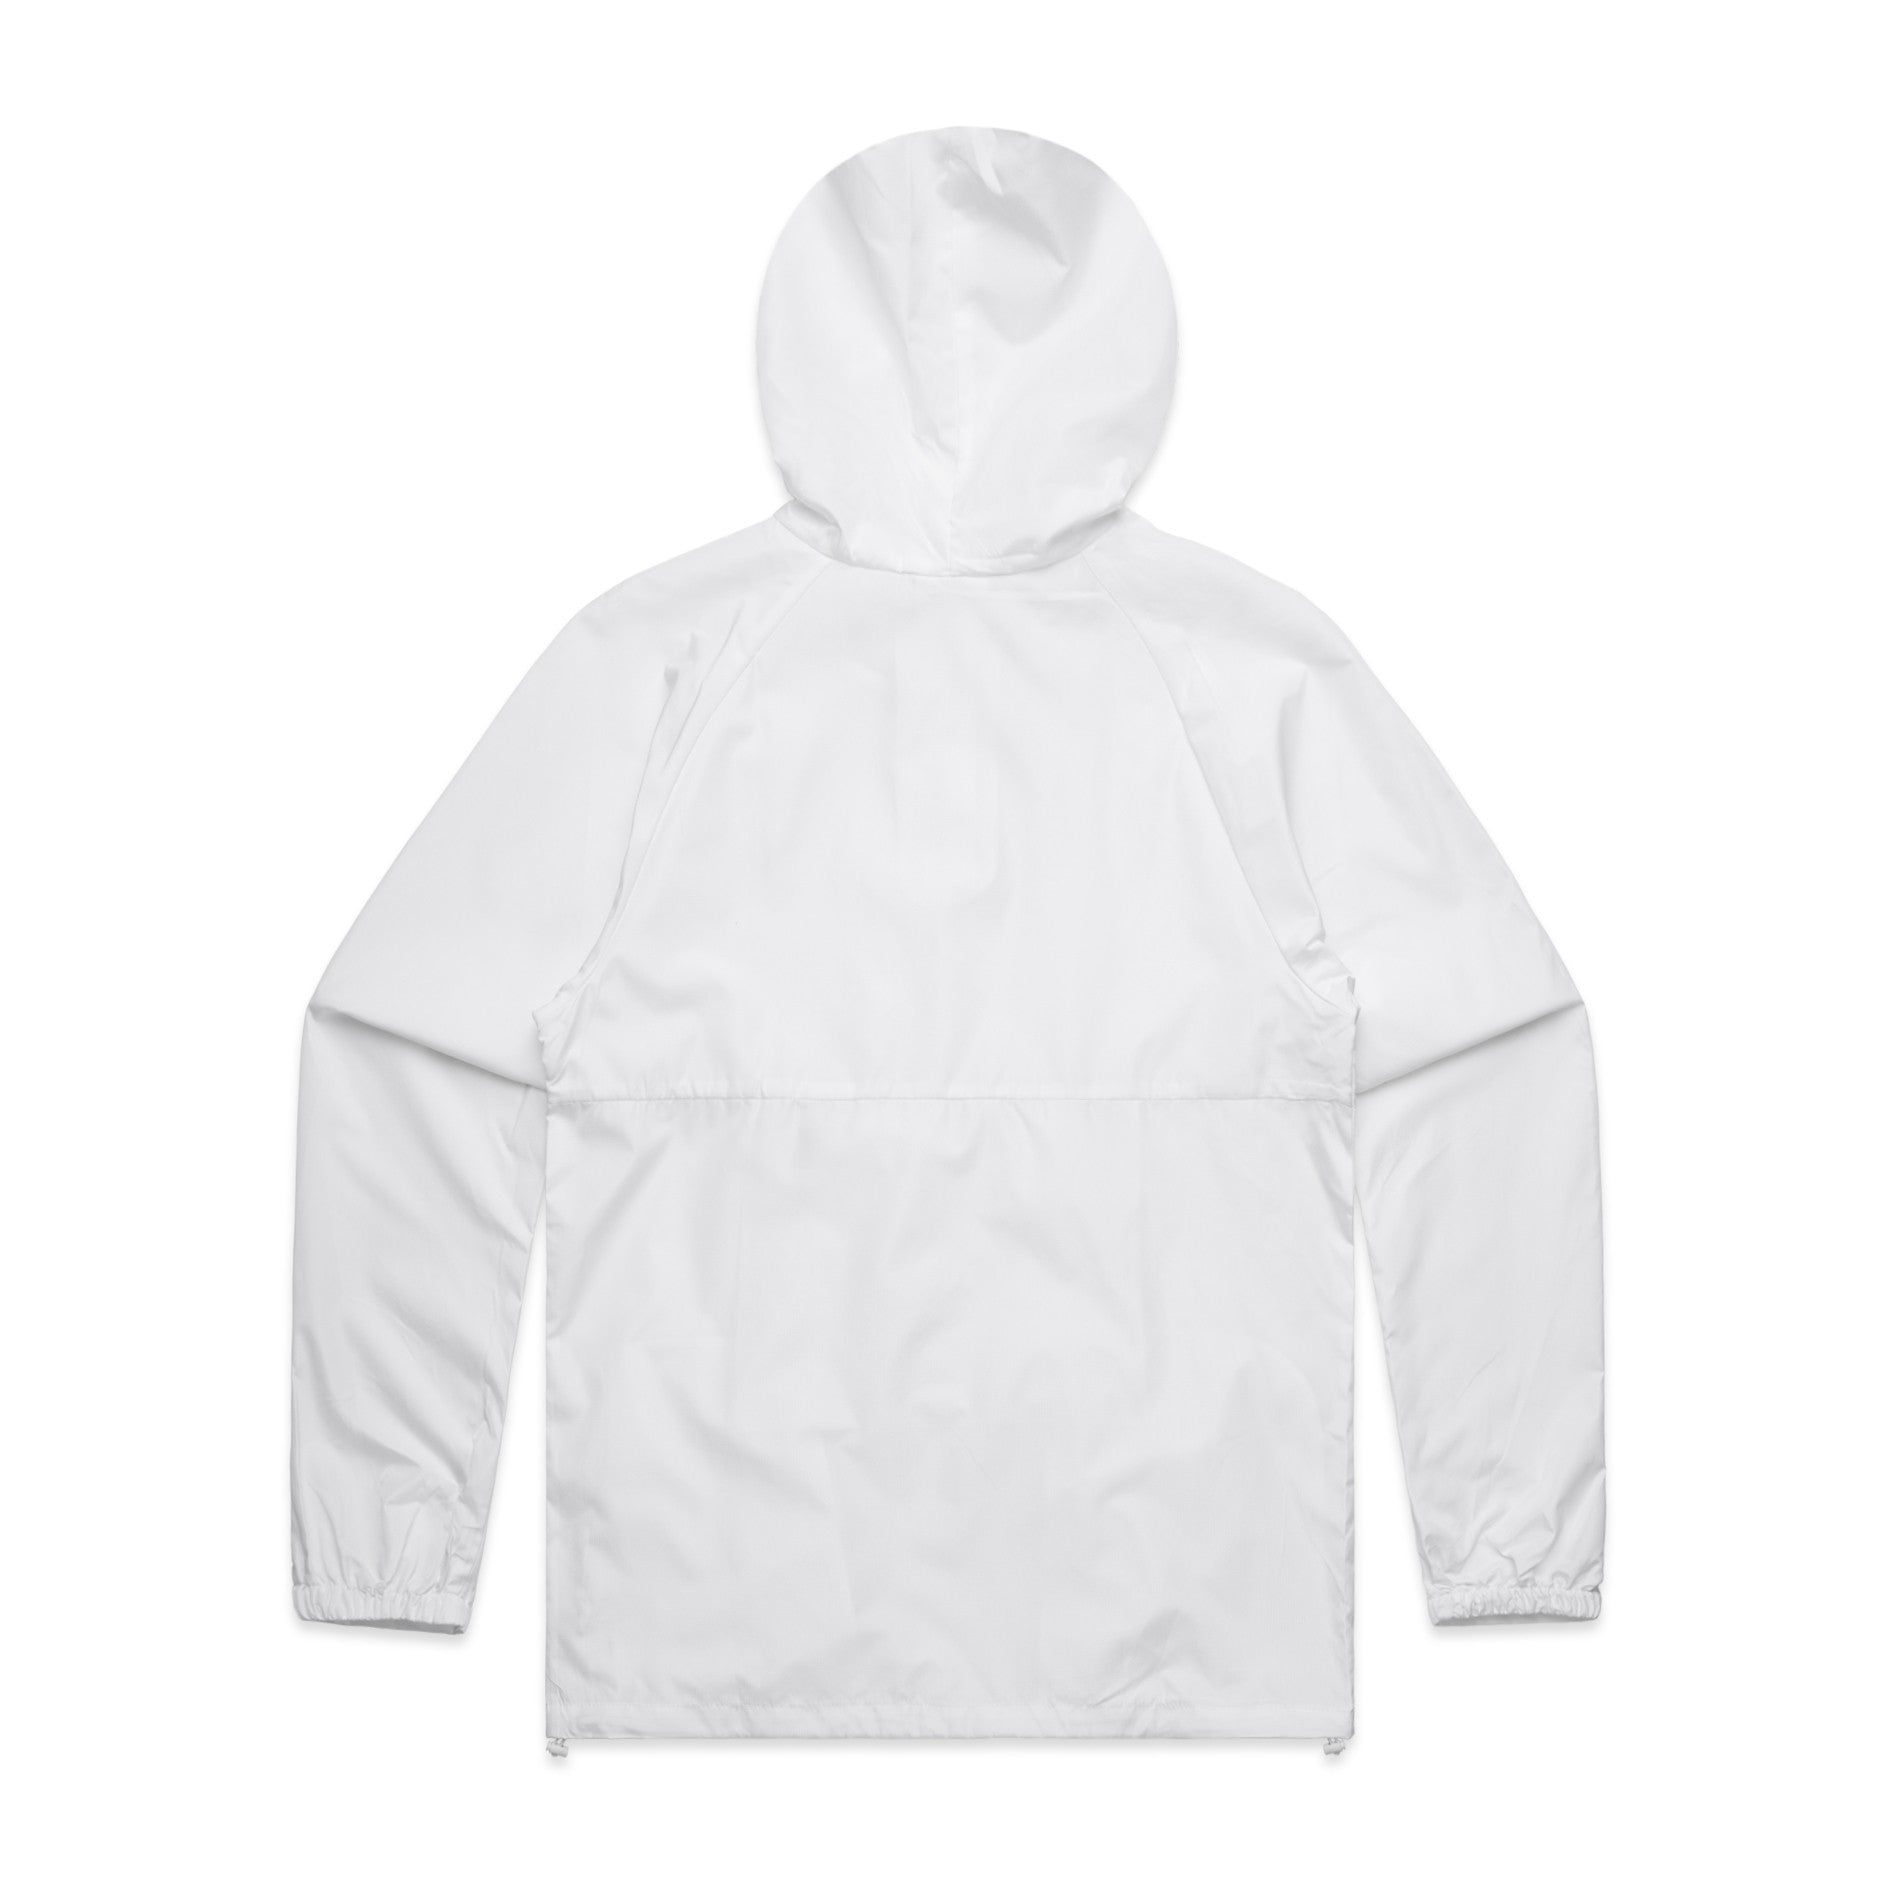 birds-of-condor-white-wind-breaker-golf-jacket